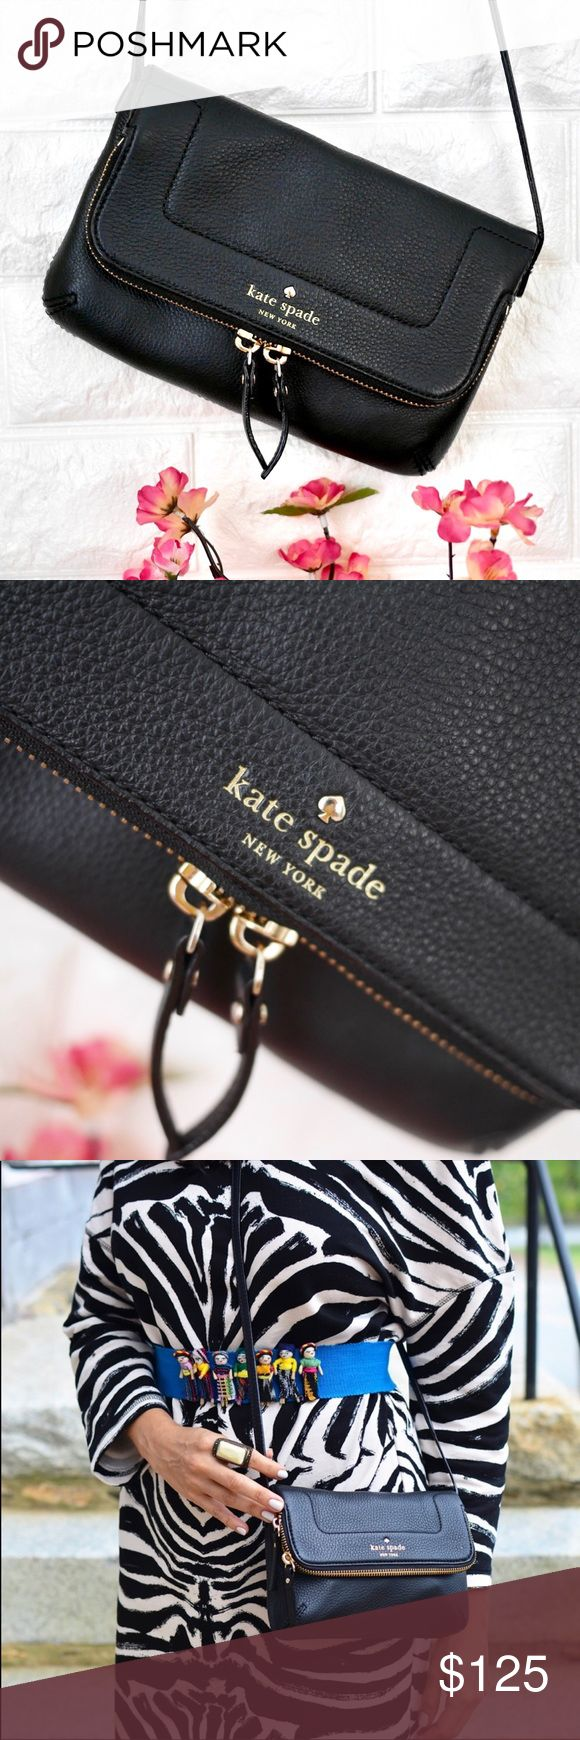 """💖NWOT Kate Spade Mariana Mansfield NWOT. ✔️ No signs of wear. Exterior recently cleaned with leather cleaner. ✔️PRICE FIRM. No trades.  DETAILS: Color: Black Material: Smooth Leather  Dimension: 8.5W x 5H Strap length: 21"""" kate spade Bags Crossbody Bags"""